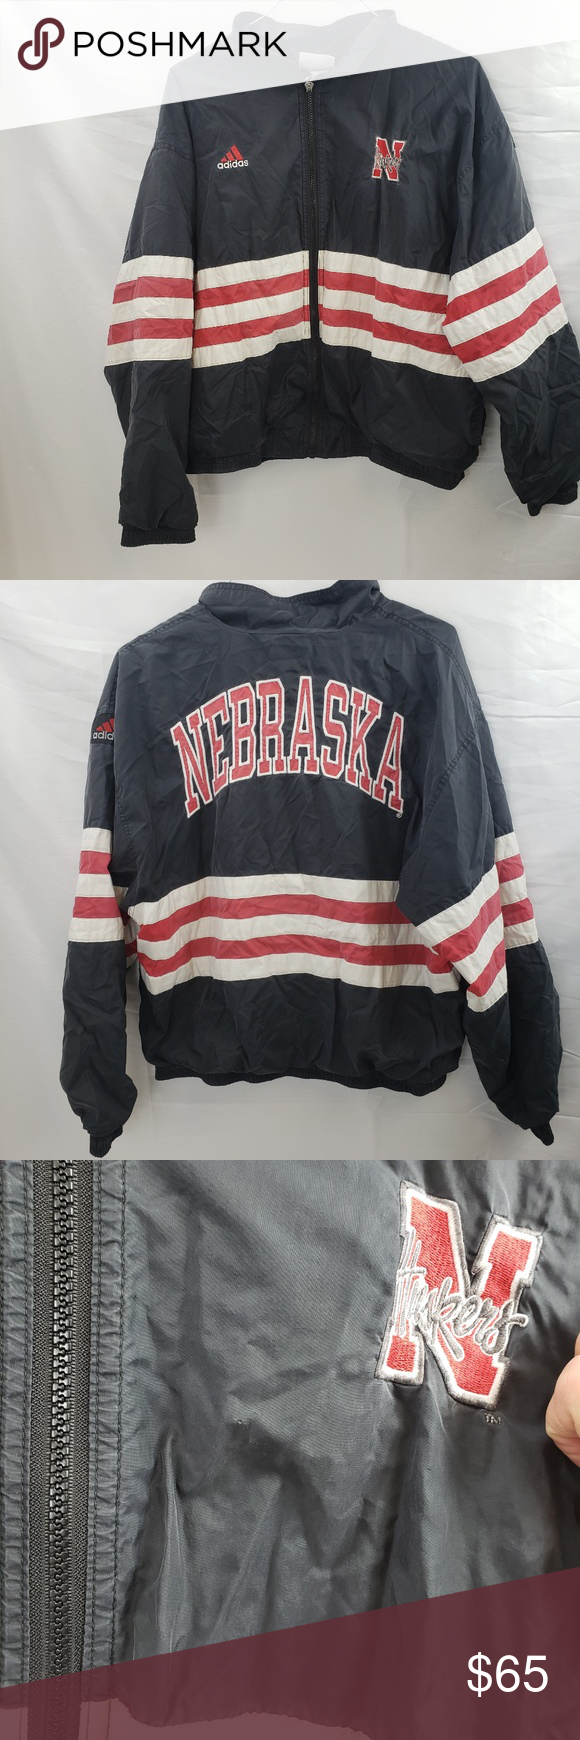 Nebraska Huskers Adidas Football Vintage This Adidas Windbreaker Is A Little Faded As Well As The Handle From The Clothes Design Fashion Design Adidas Football [ 1740 x 580 Pixel ]